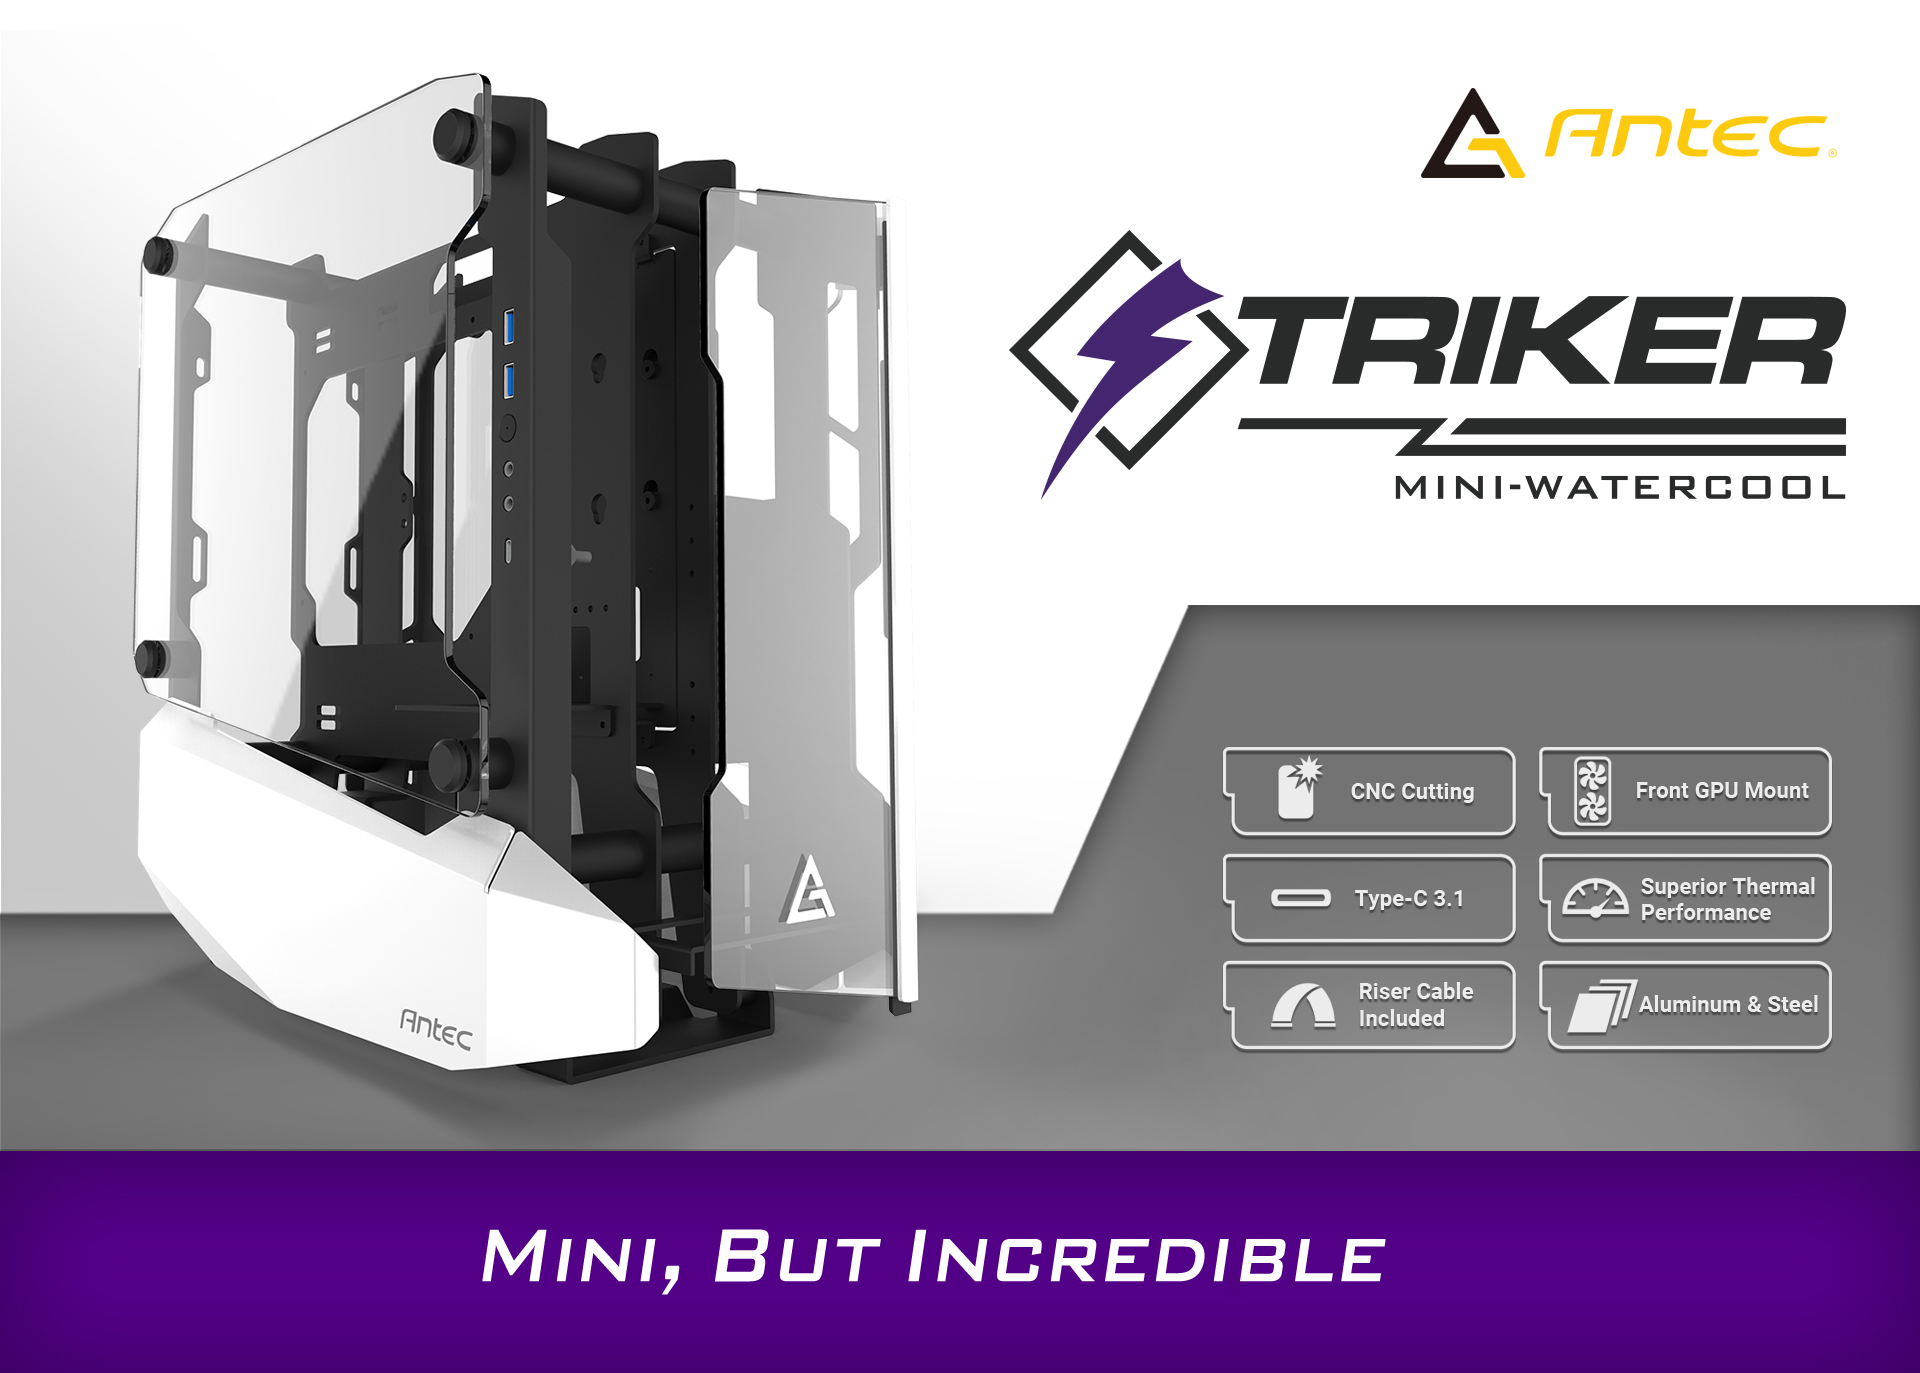 Antec STRIKER Aluminum and Steel ITX Computer Case side view and Antec logo